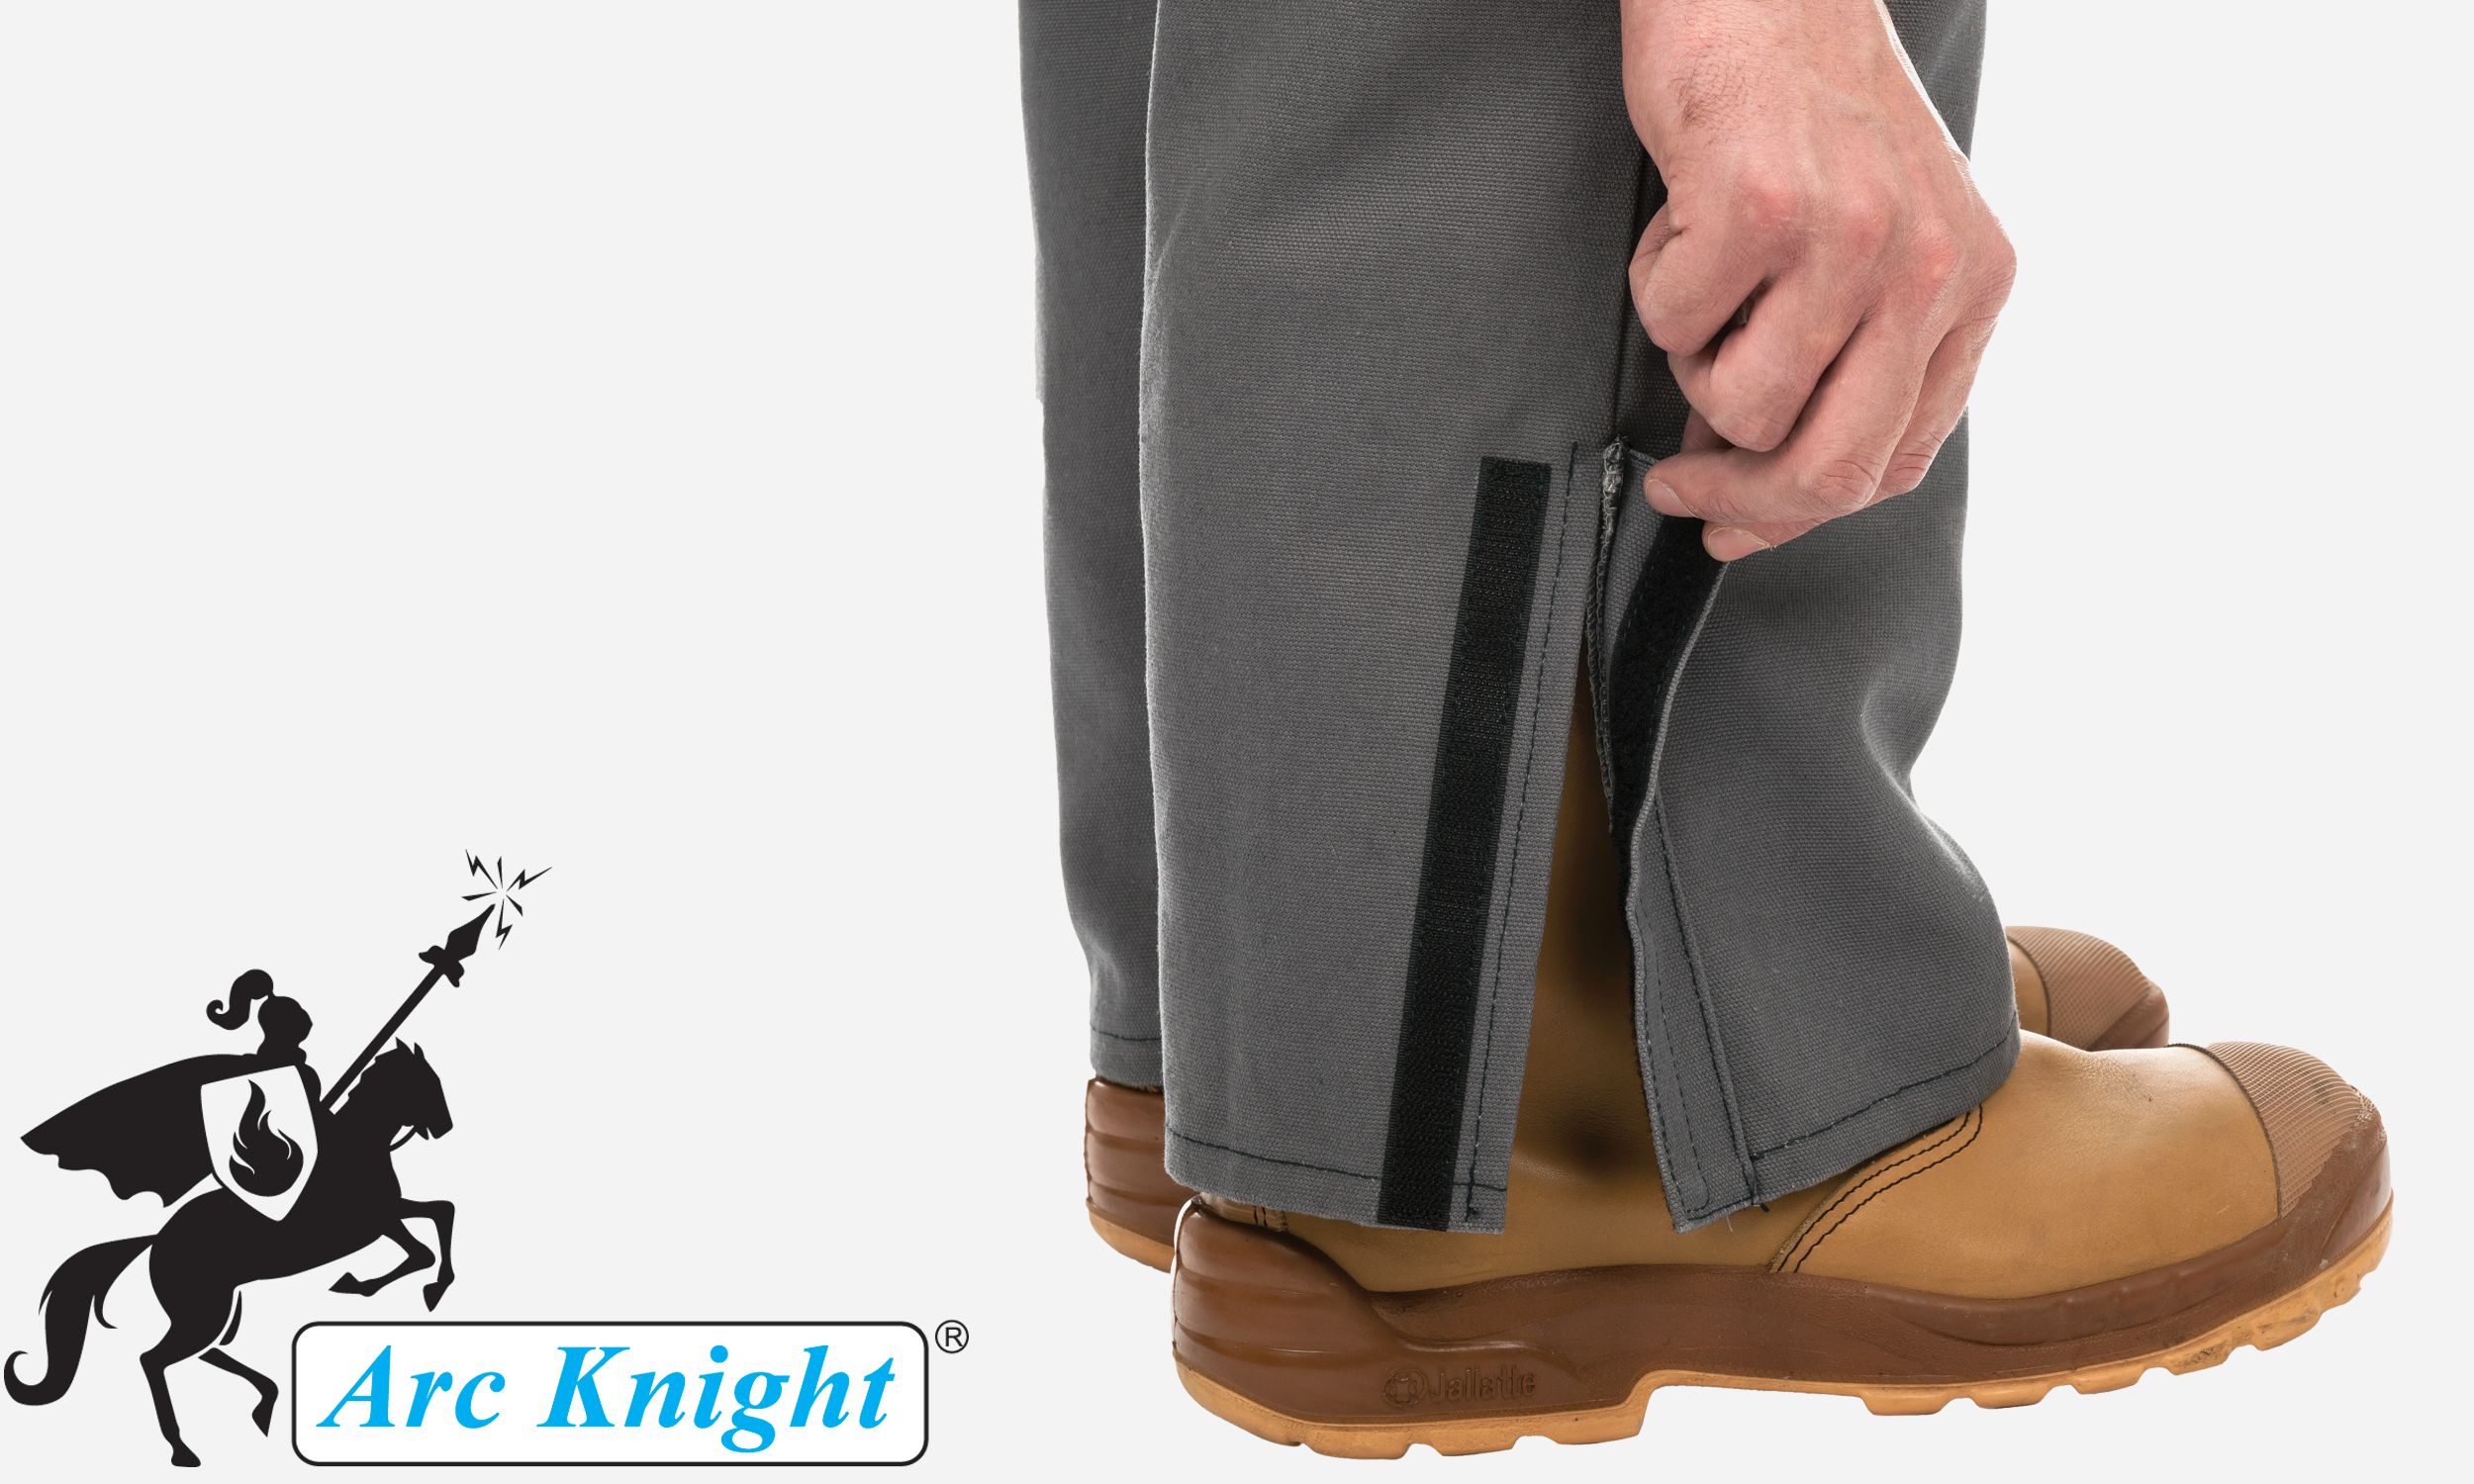 38-4340 Arc Knight Overall Foot View.png